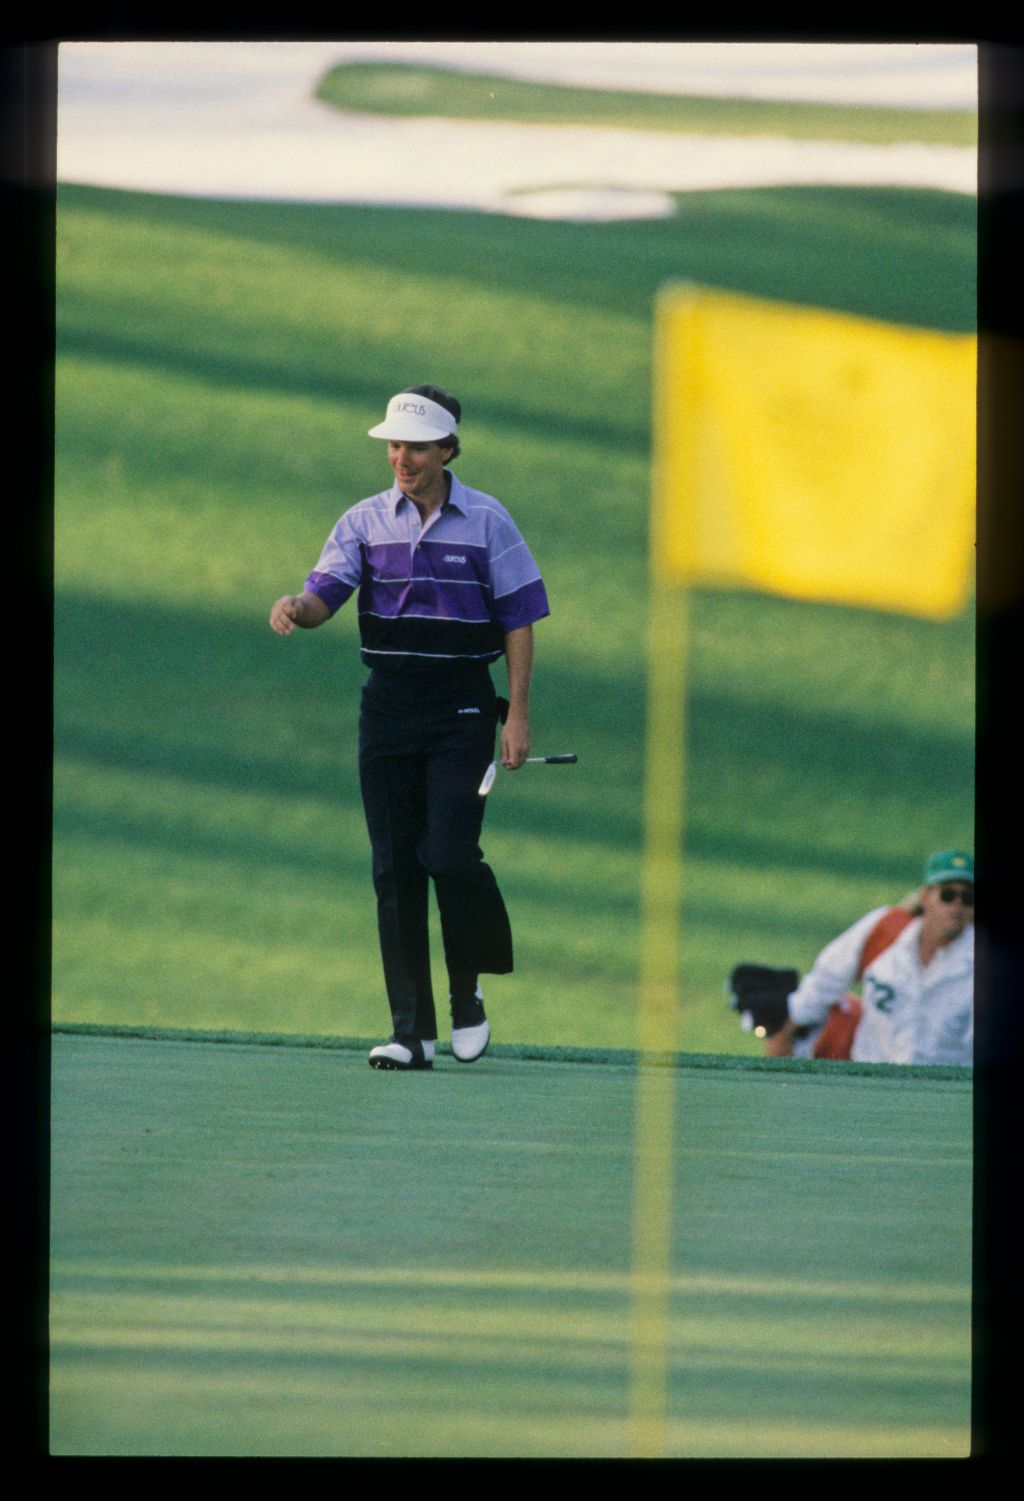 Larry Mize acknowledging the crowd while approaching the green on his way to winning the 1987 Masters